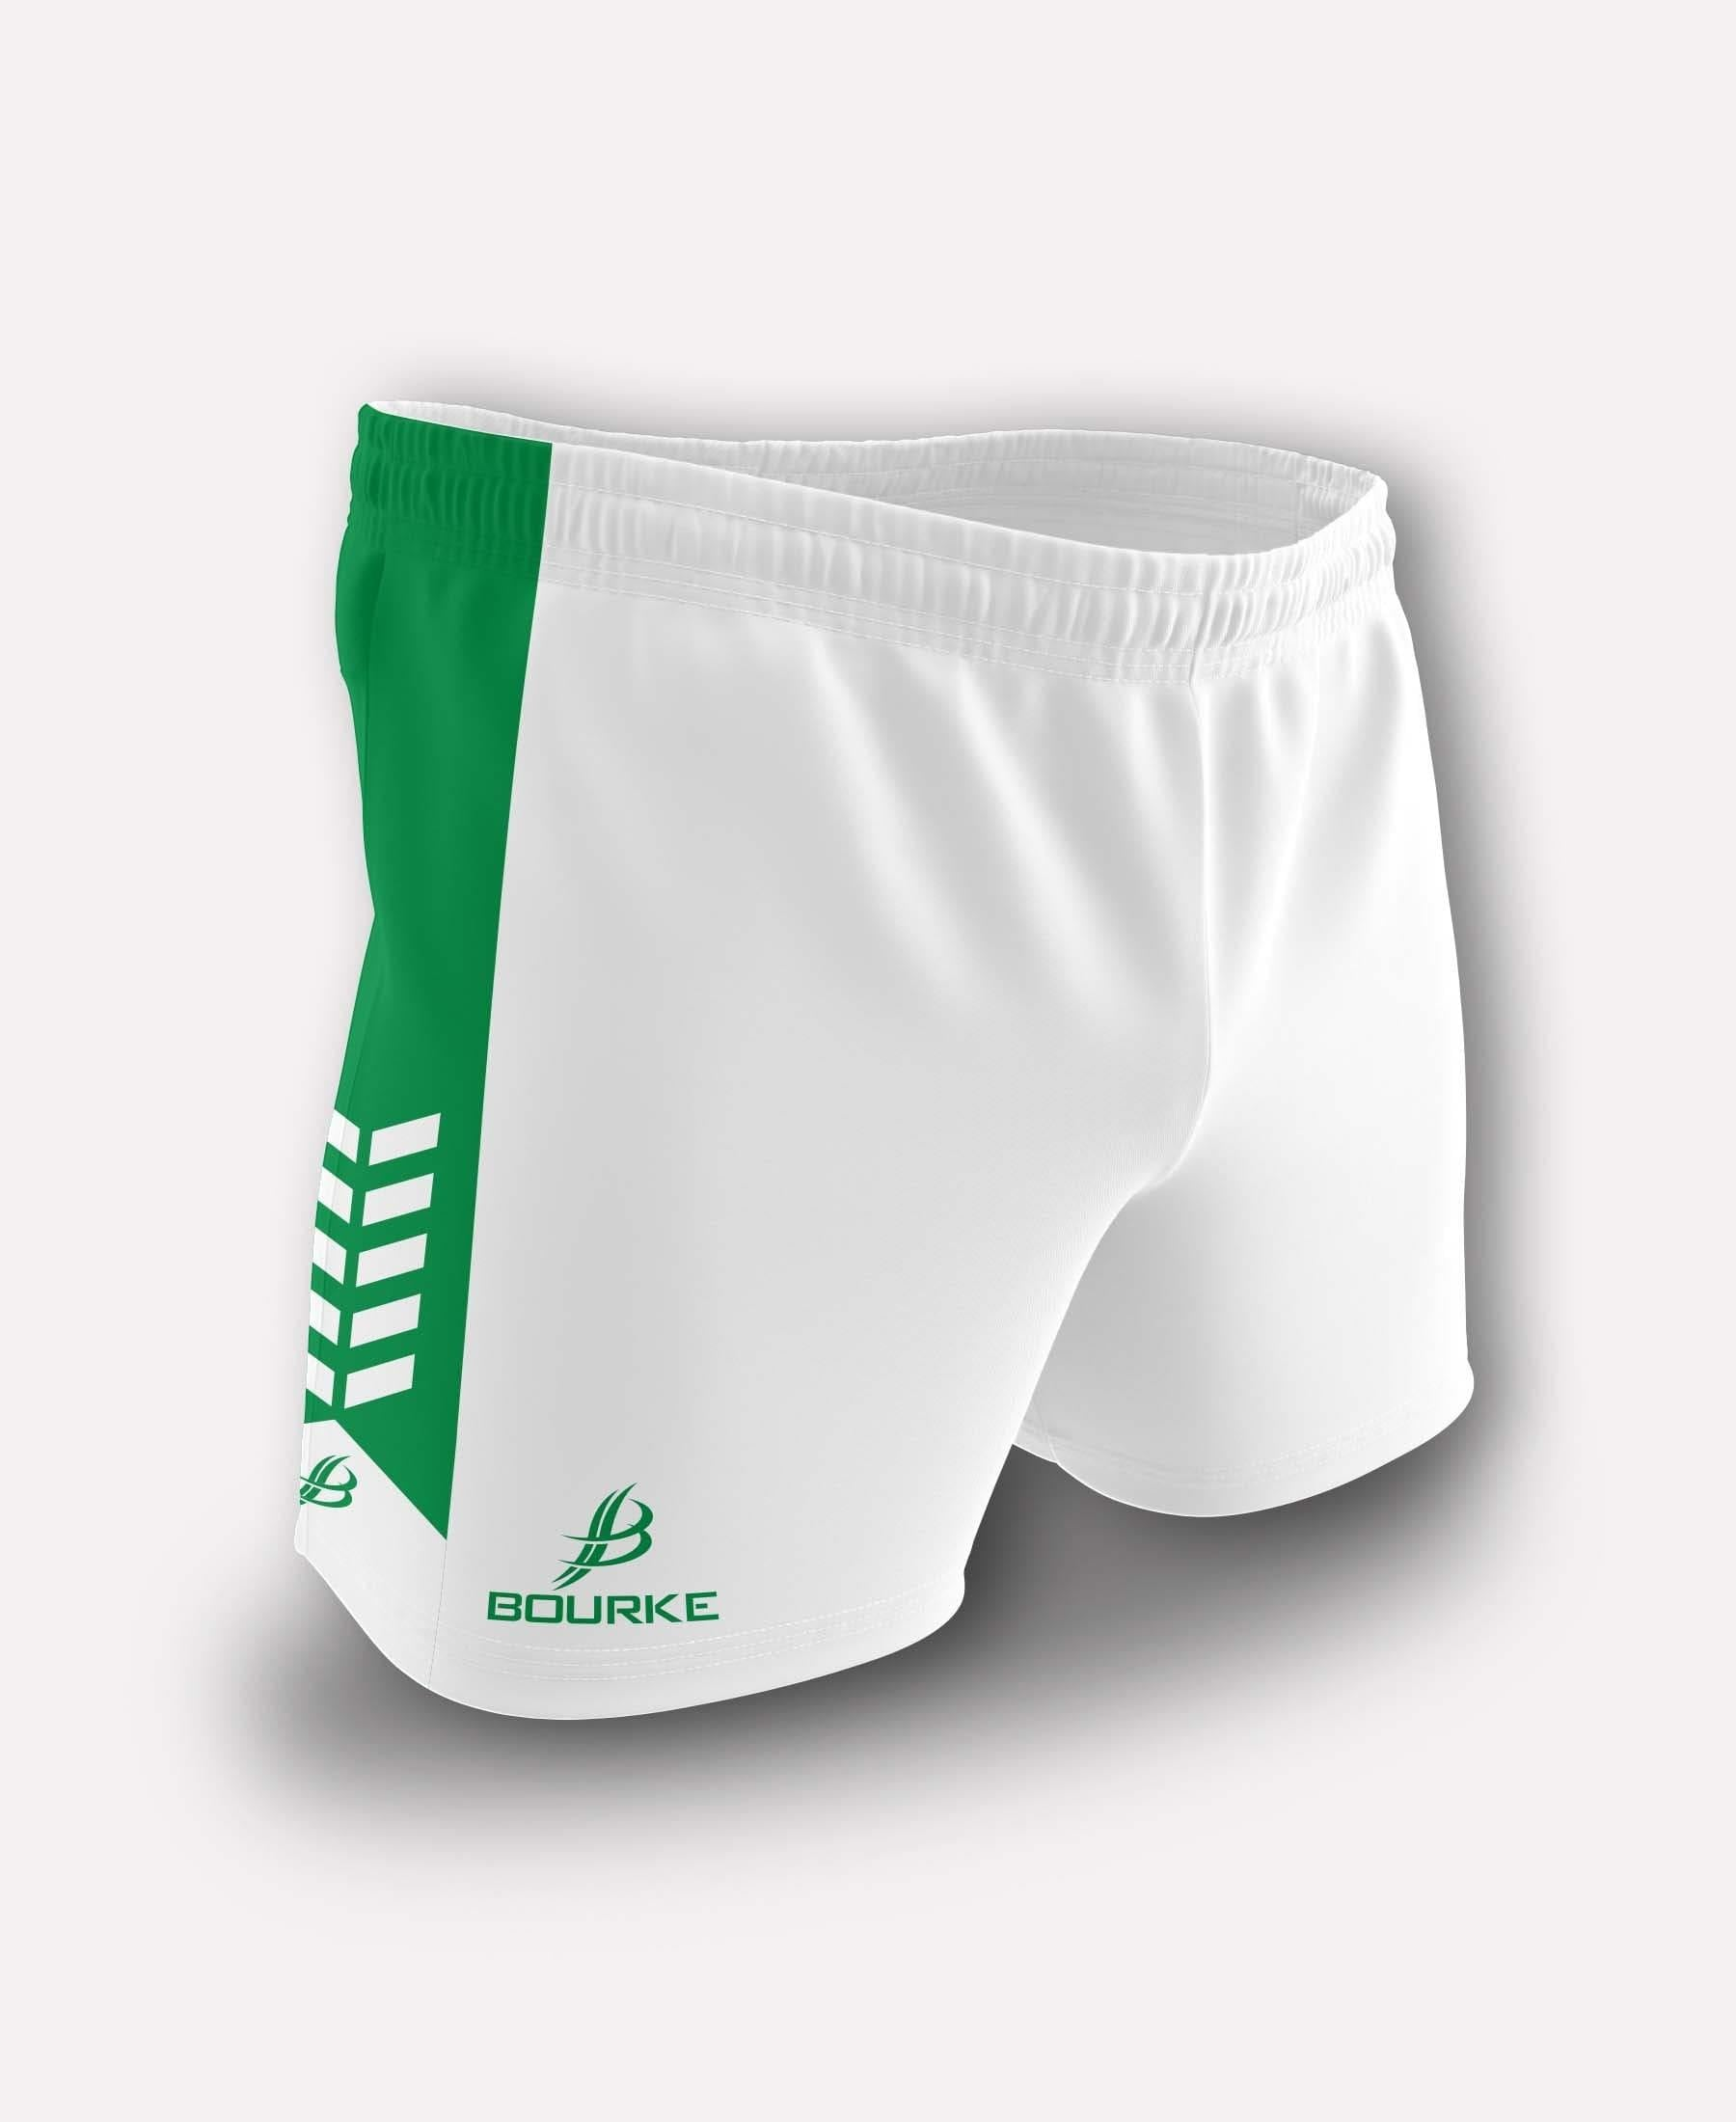 Chevron Adult Shorts (White/Green) - Bourke Sports Limited